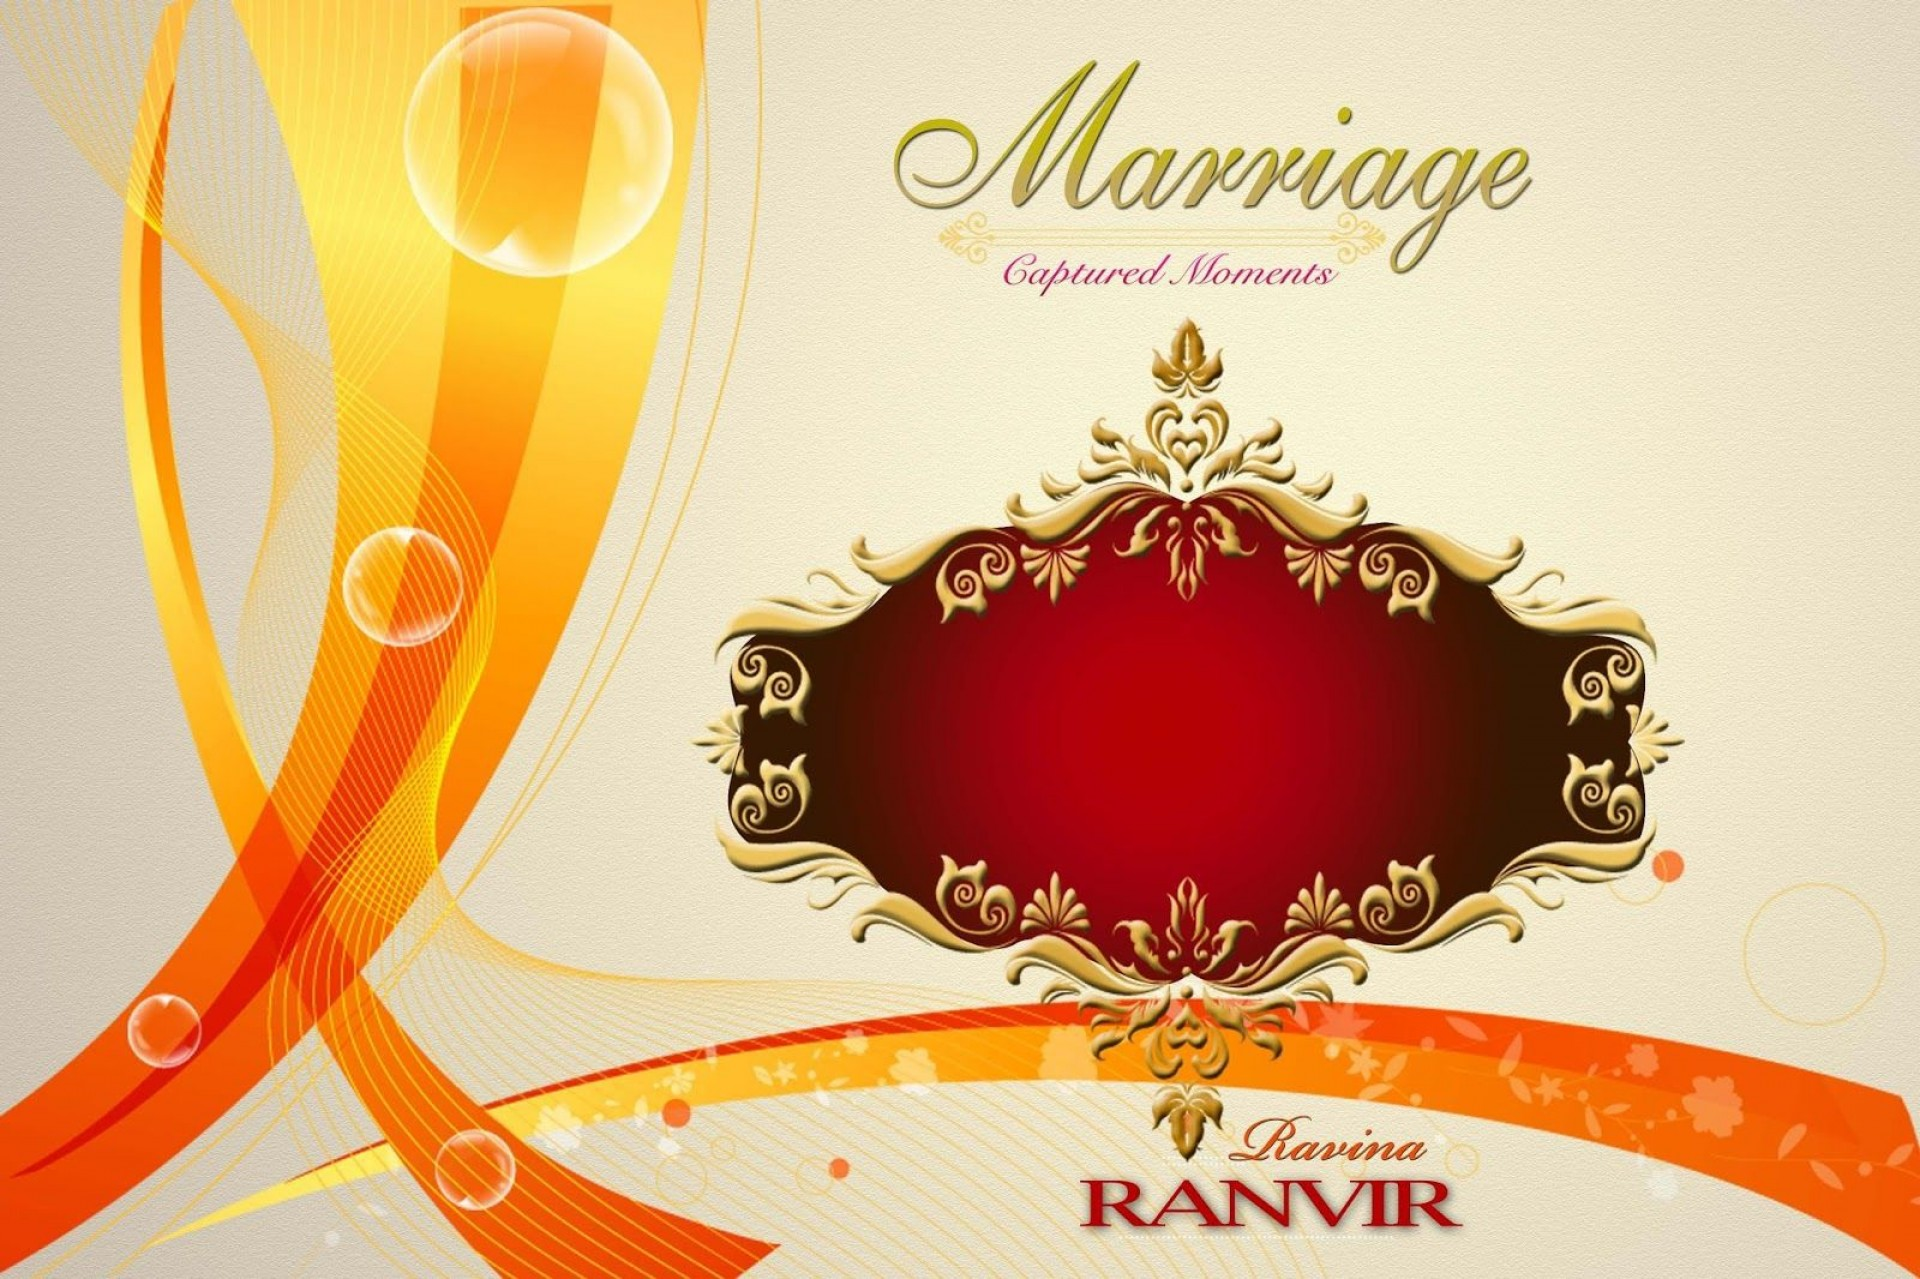 005 Best Wedding Cd Cover Design Template Free Download Concept 1920